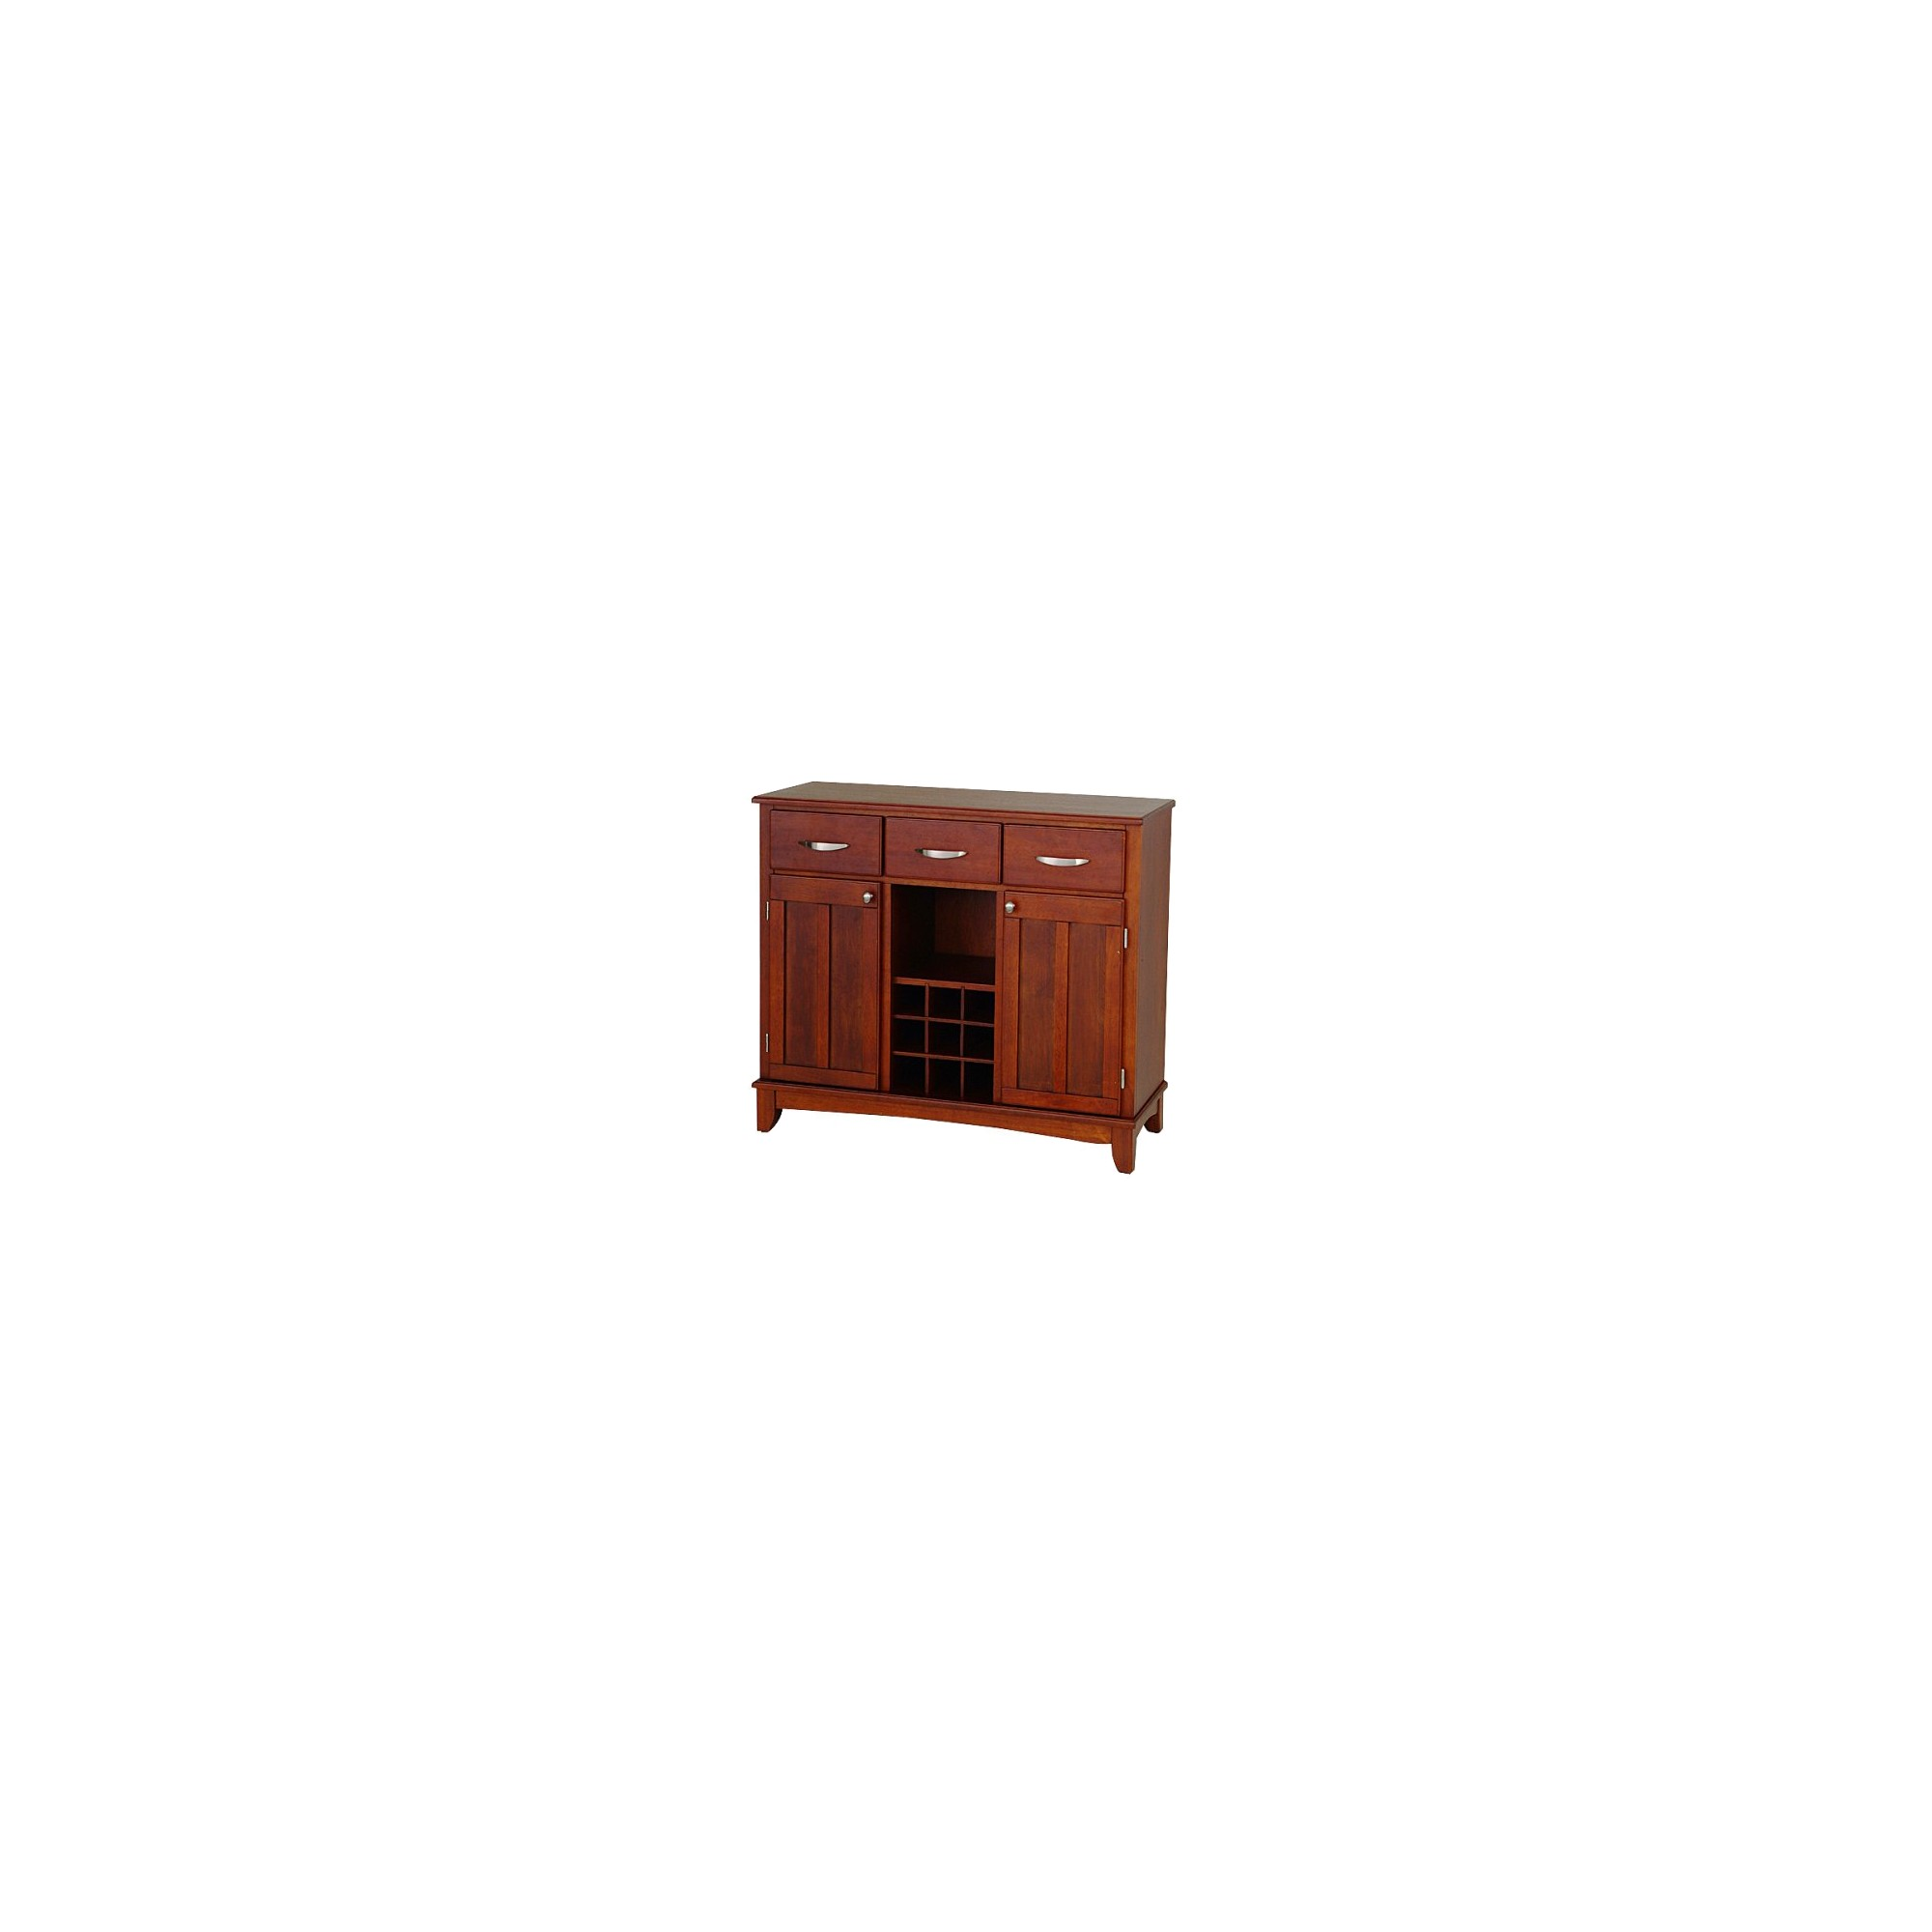 Hutch-Style Buffet Wood/Cherry - Home Styles